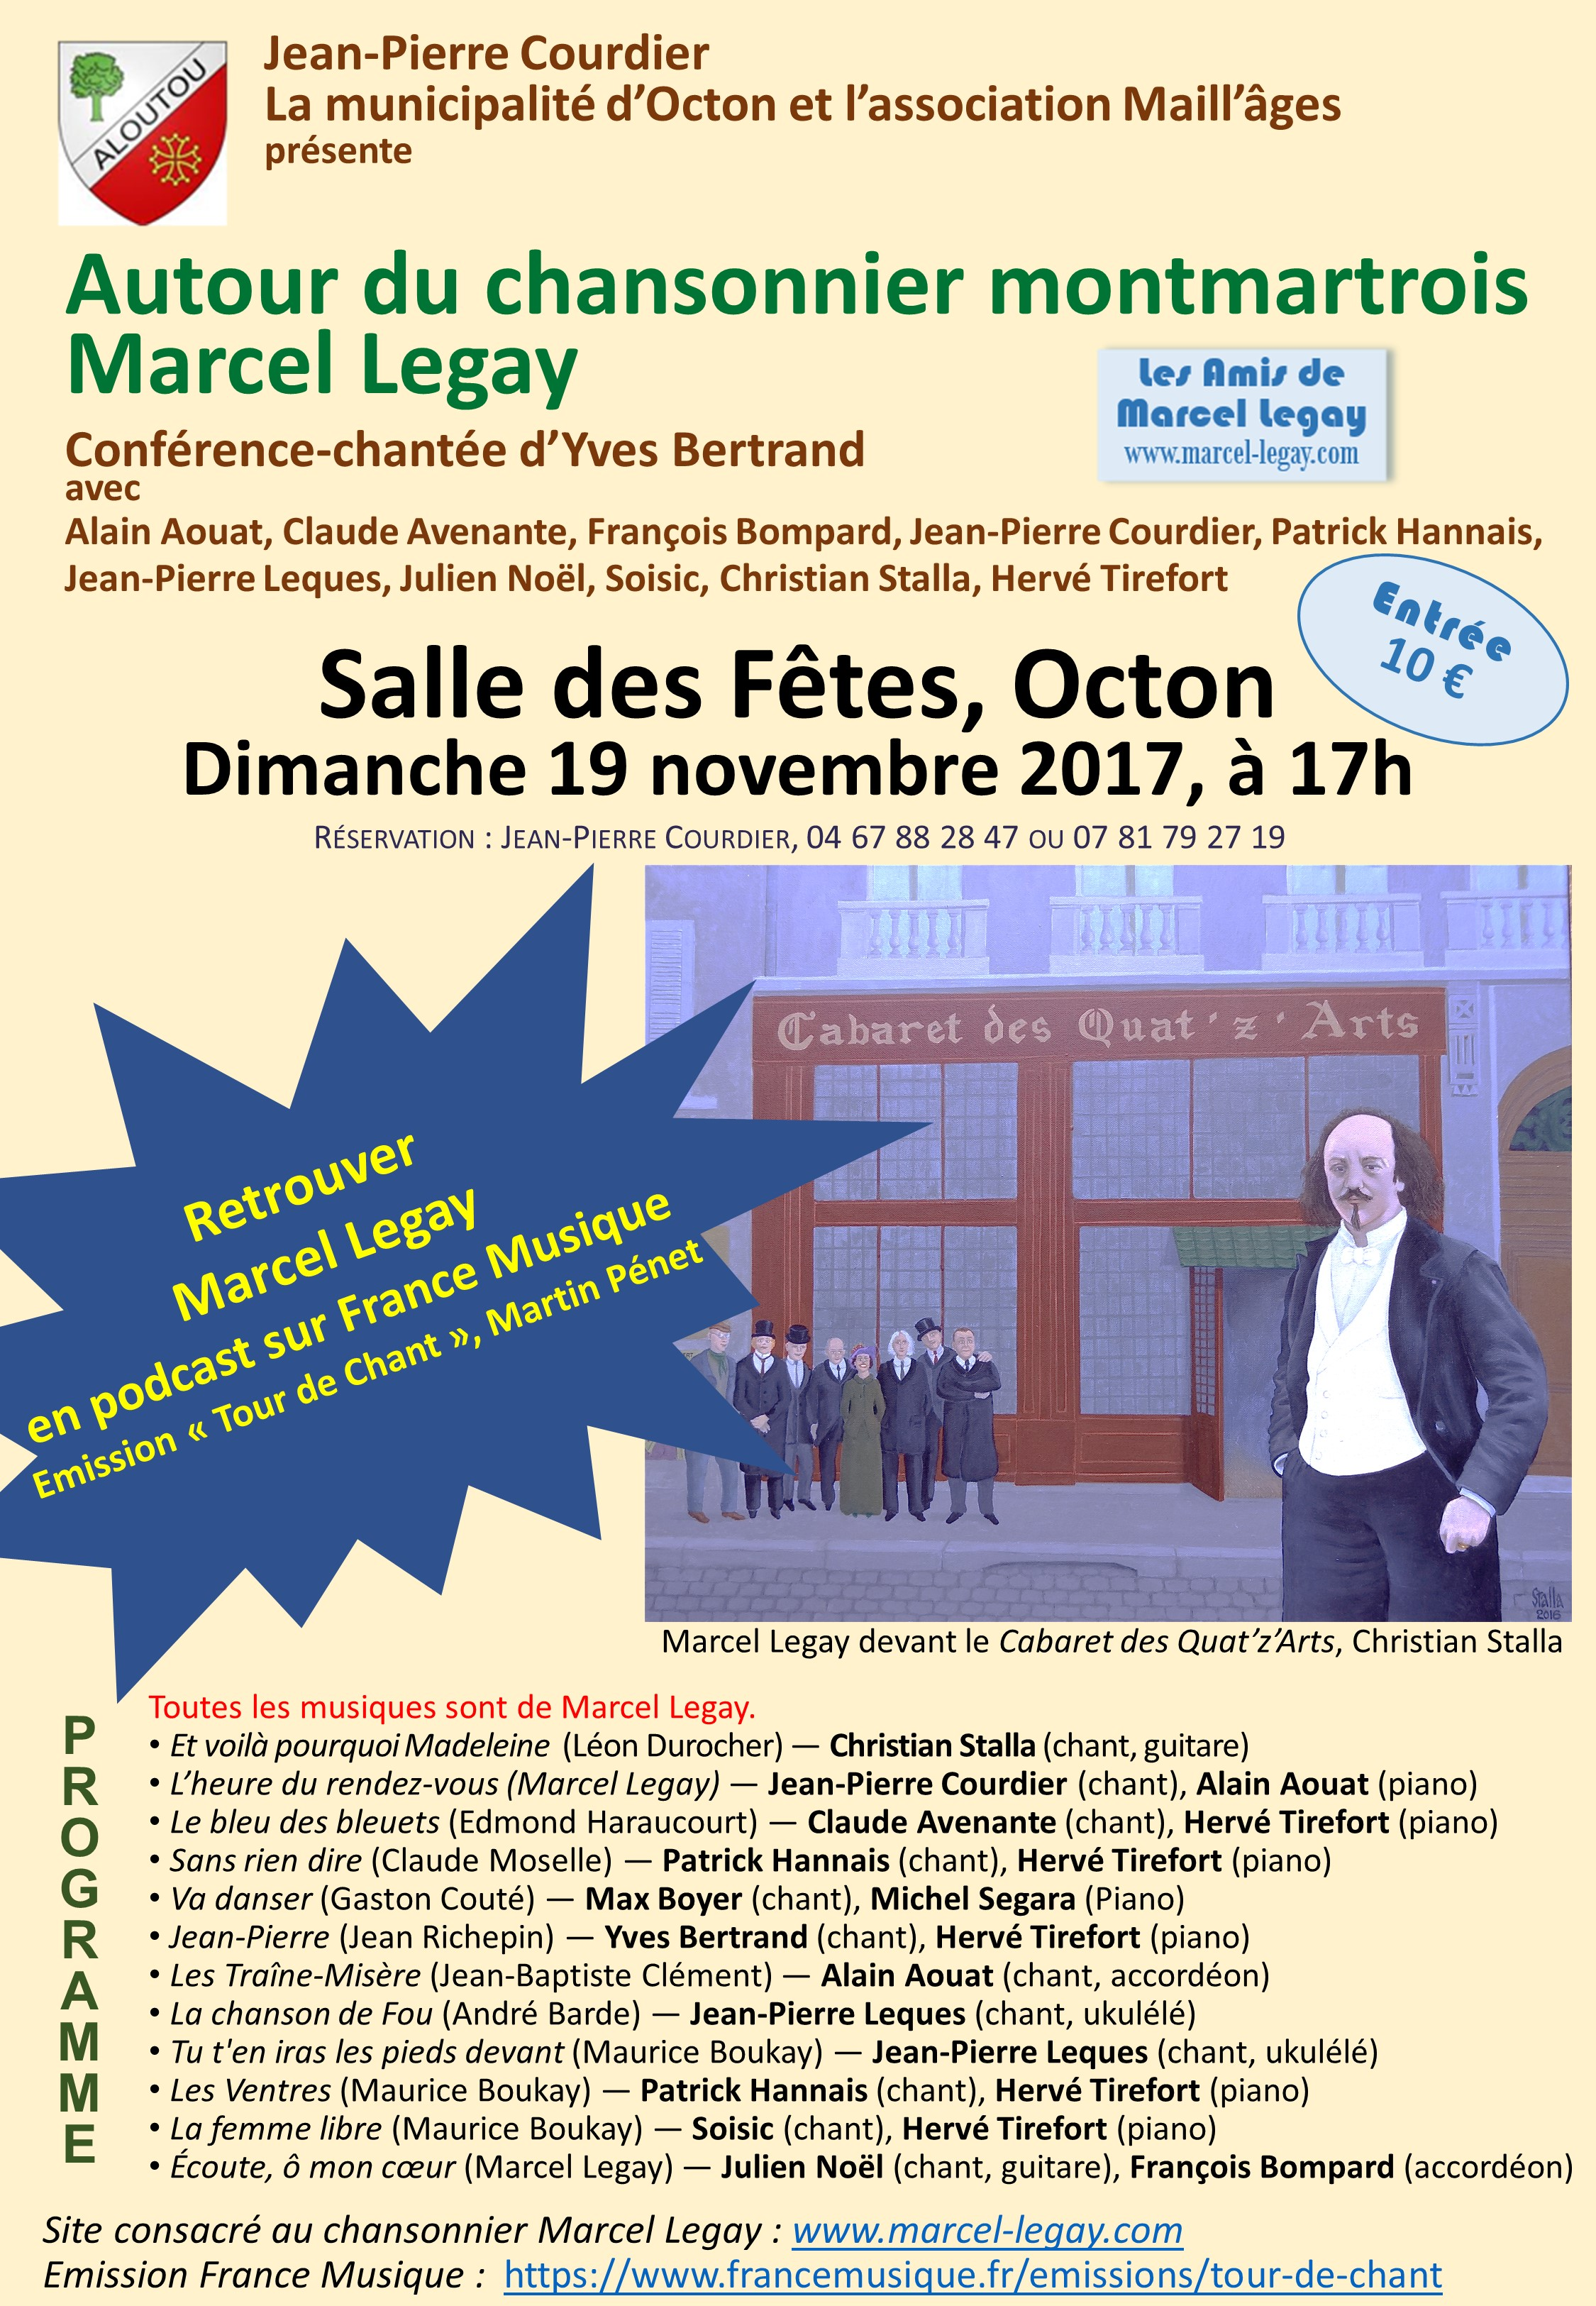 2017-11-19_Affiche-Programme_Conférence-spectacle_Octon